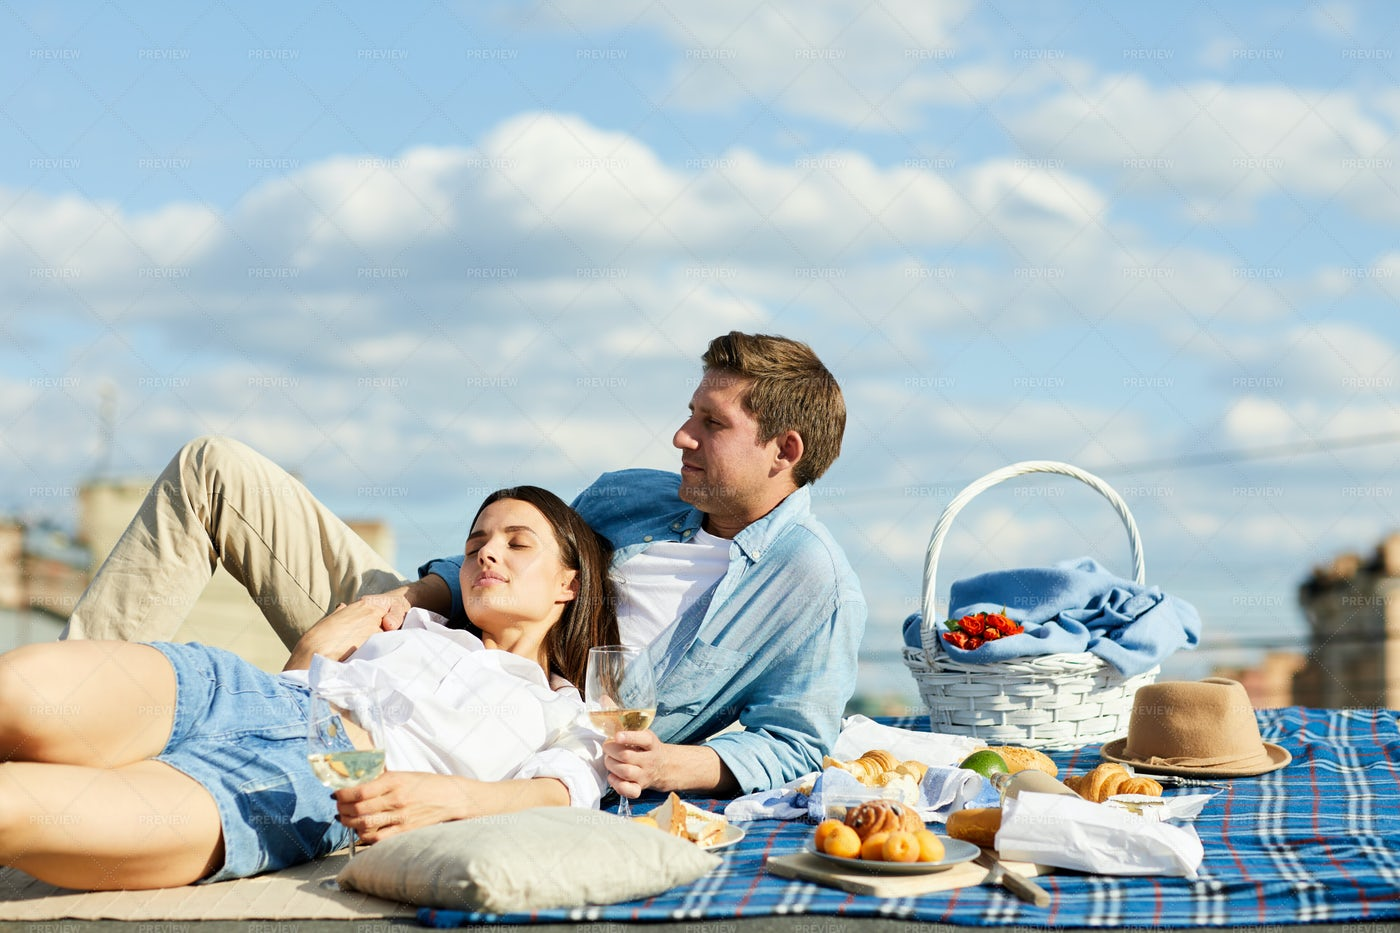 Relaxed Couple At Roof Picnic: Stock Photos